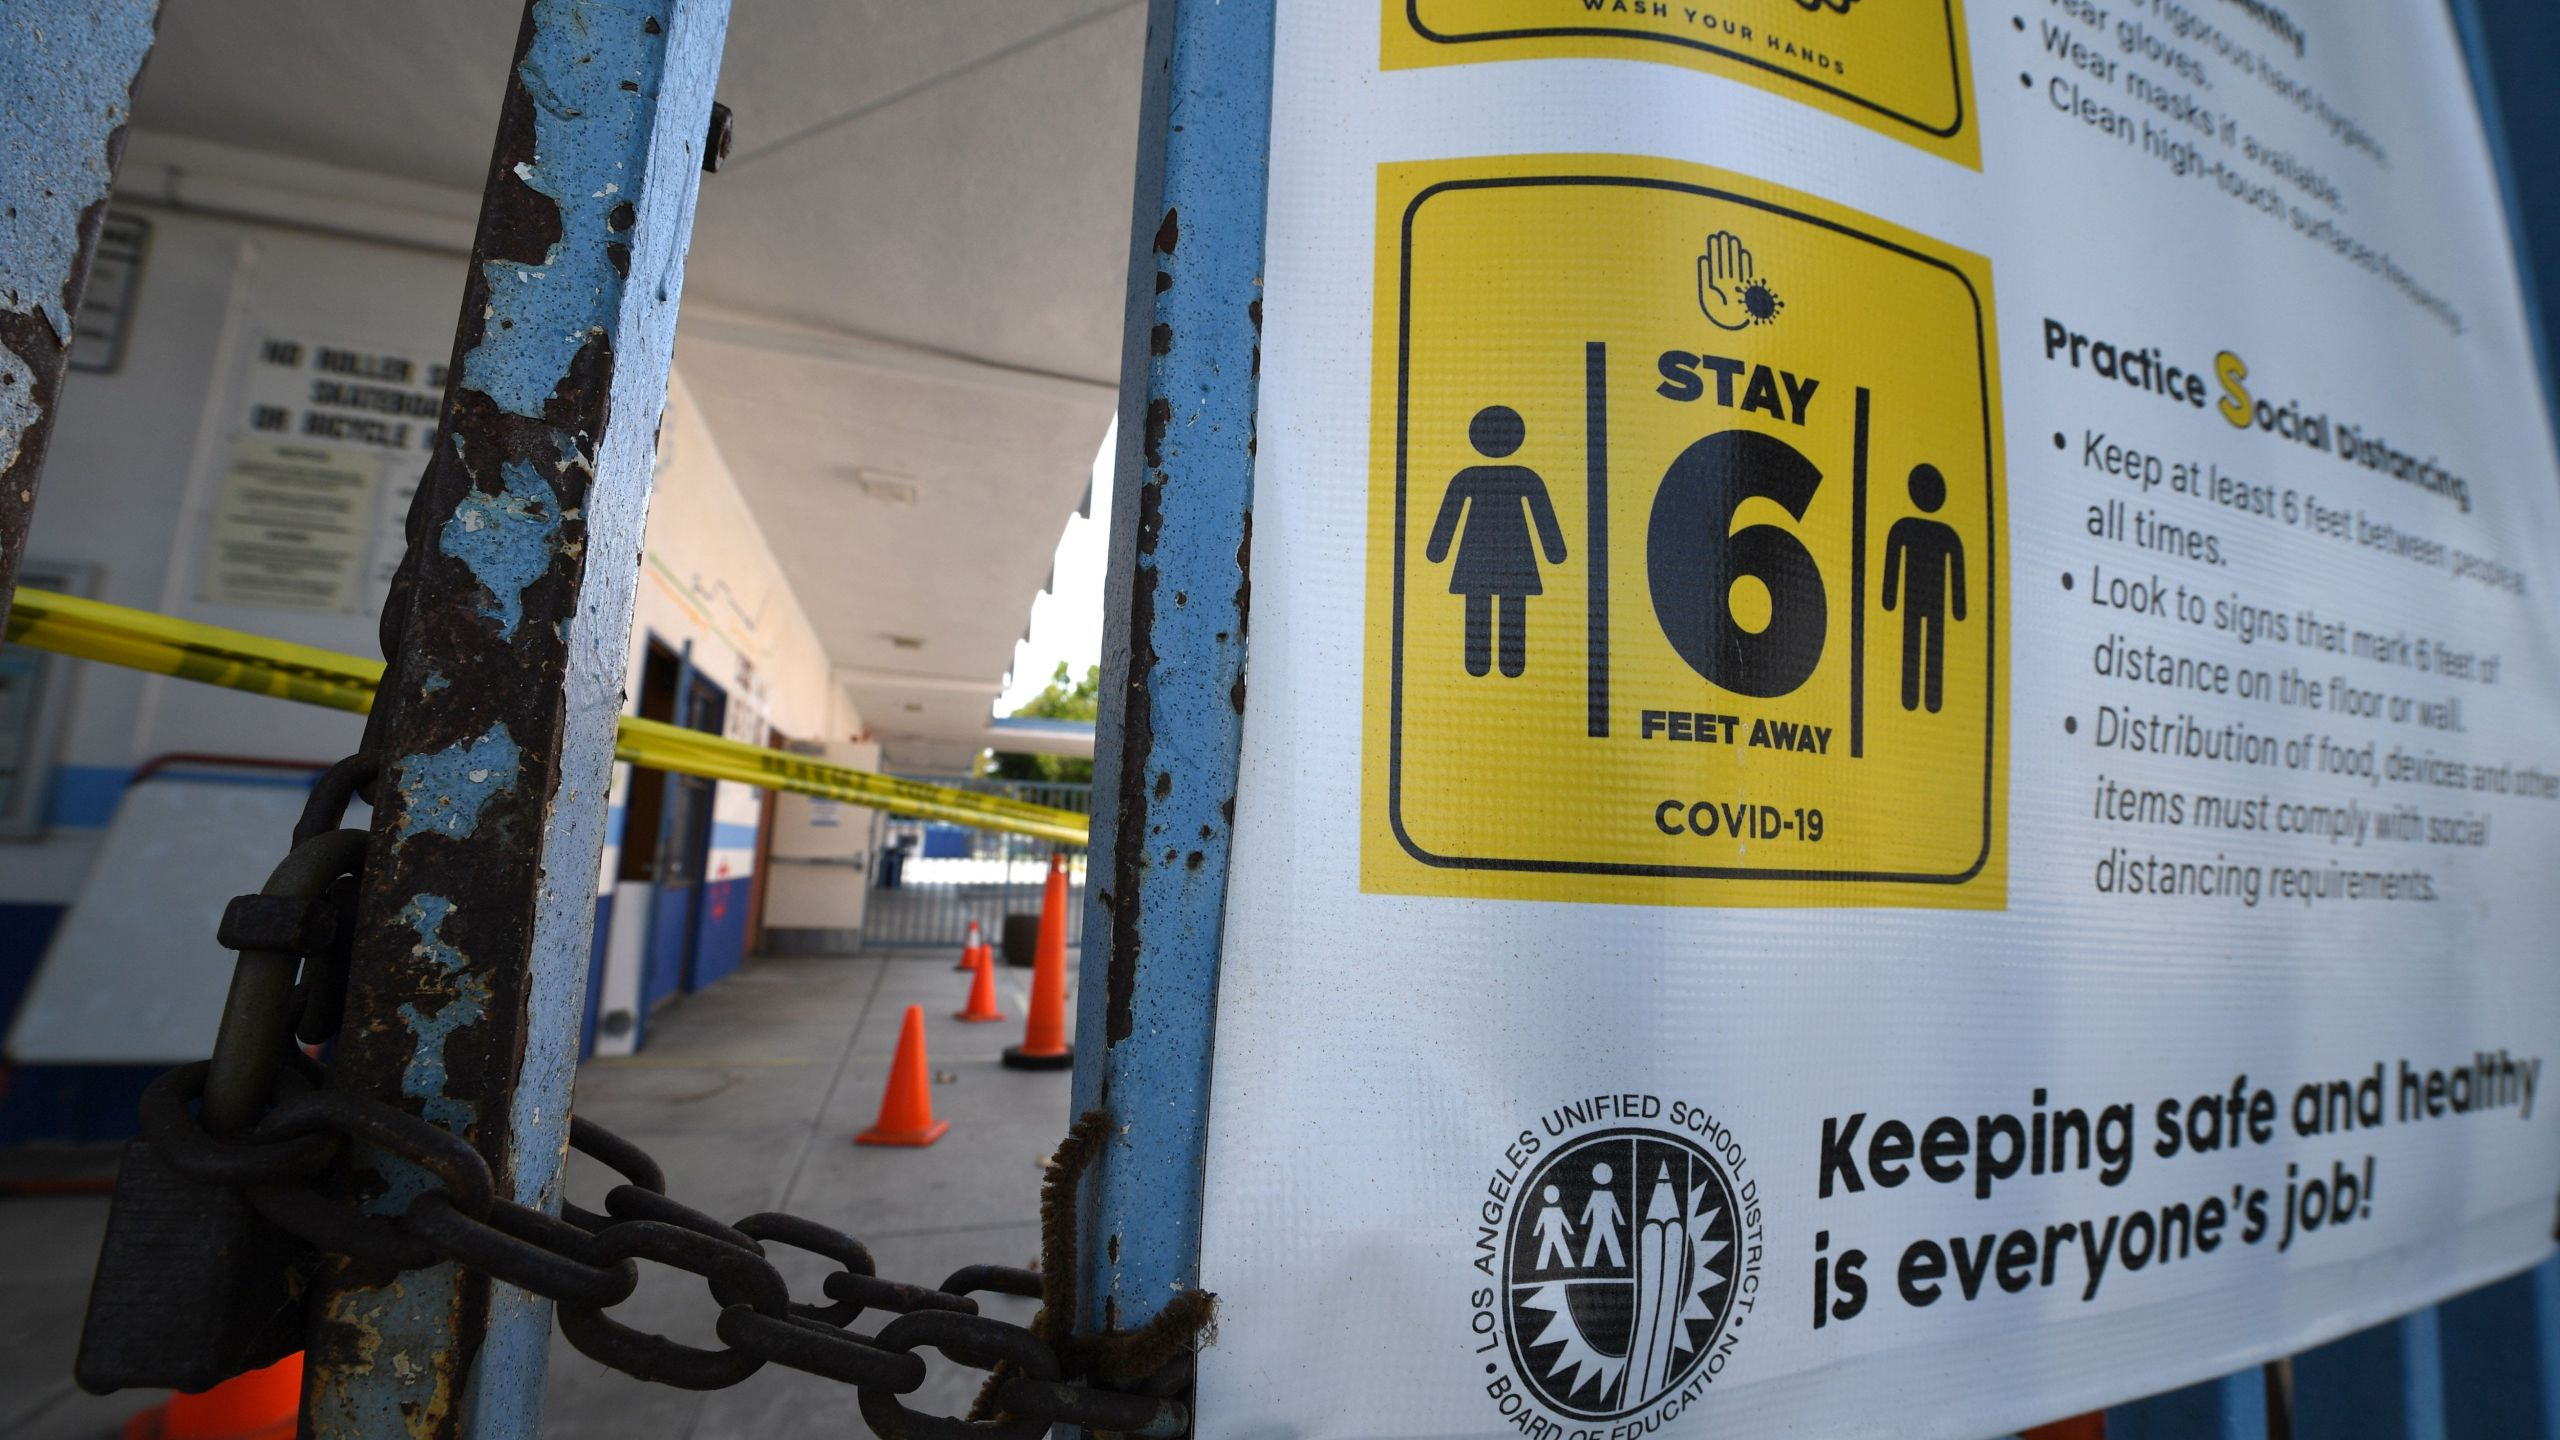 A public elementary school campus in Los Angeles is shown on Aug. 17, 2020. (ROBYN BECK/AFP via Getty Images)